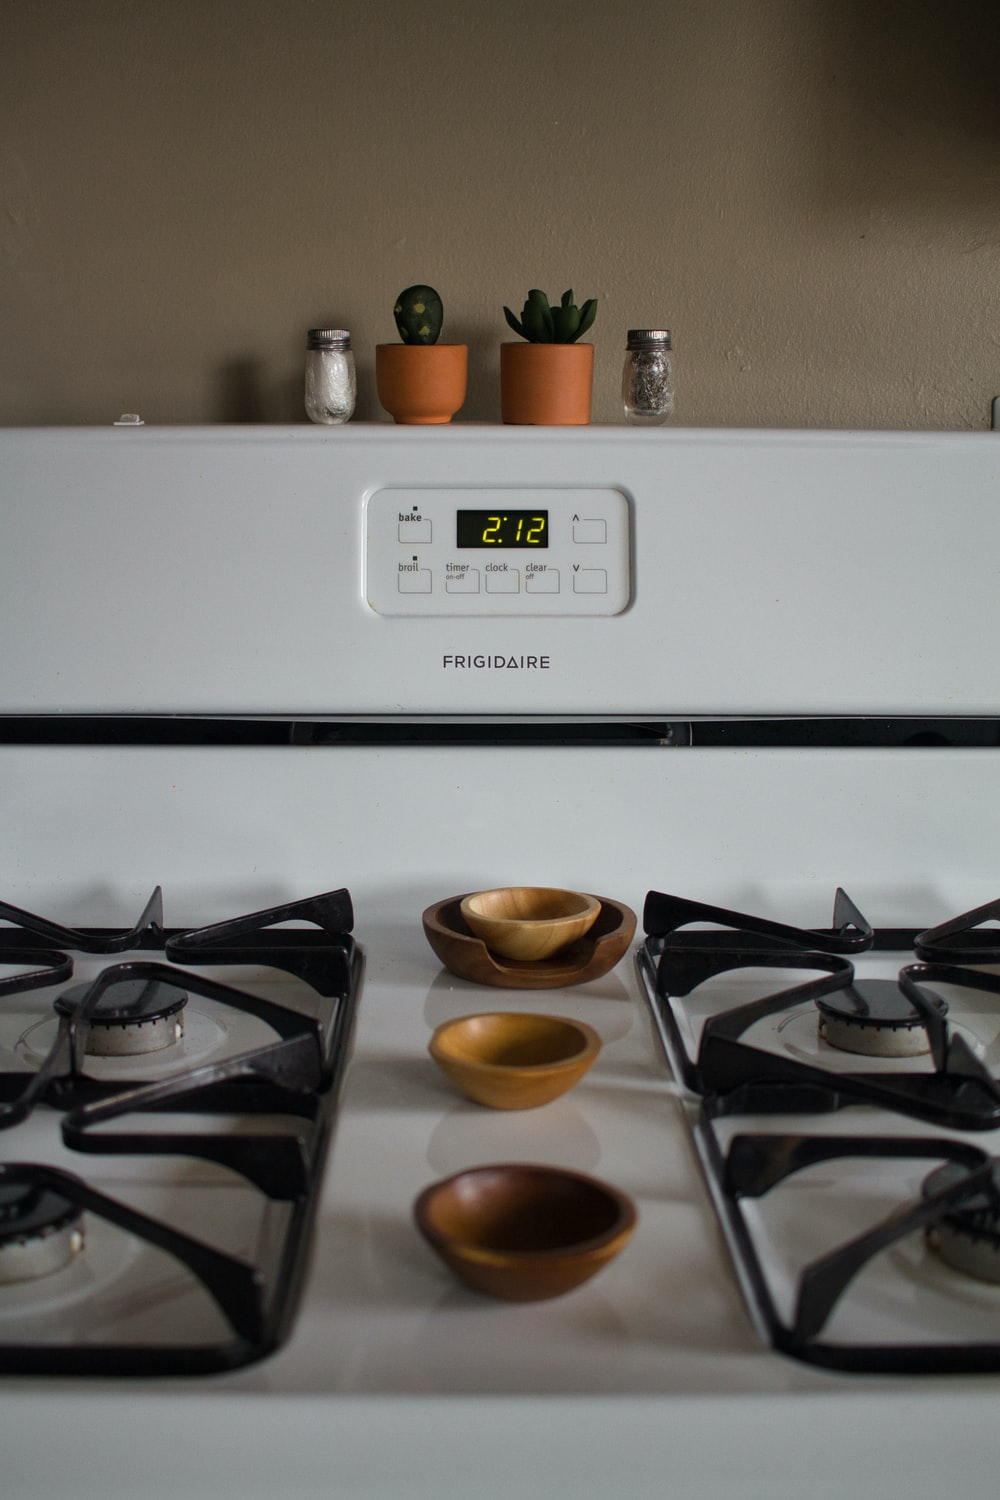 white Frigidaire gas range oven at 2.12